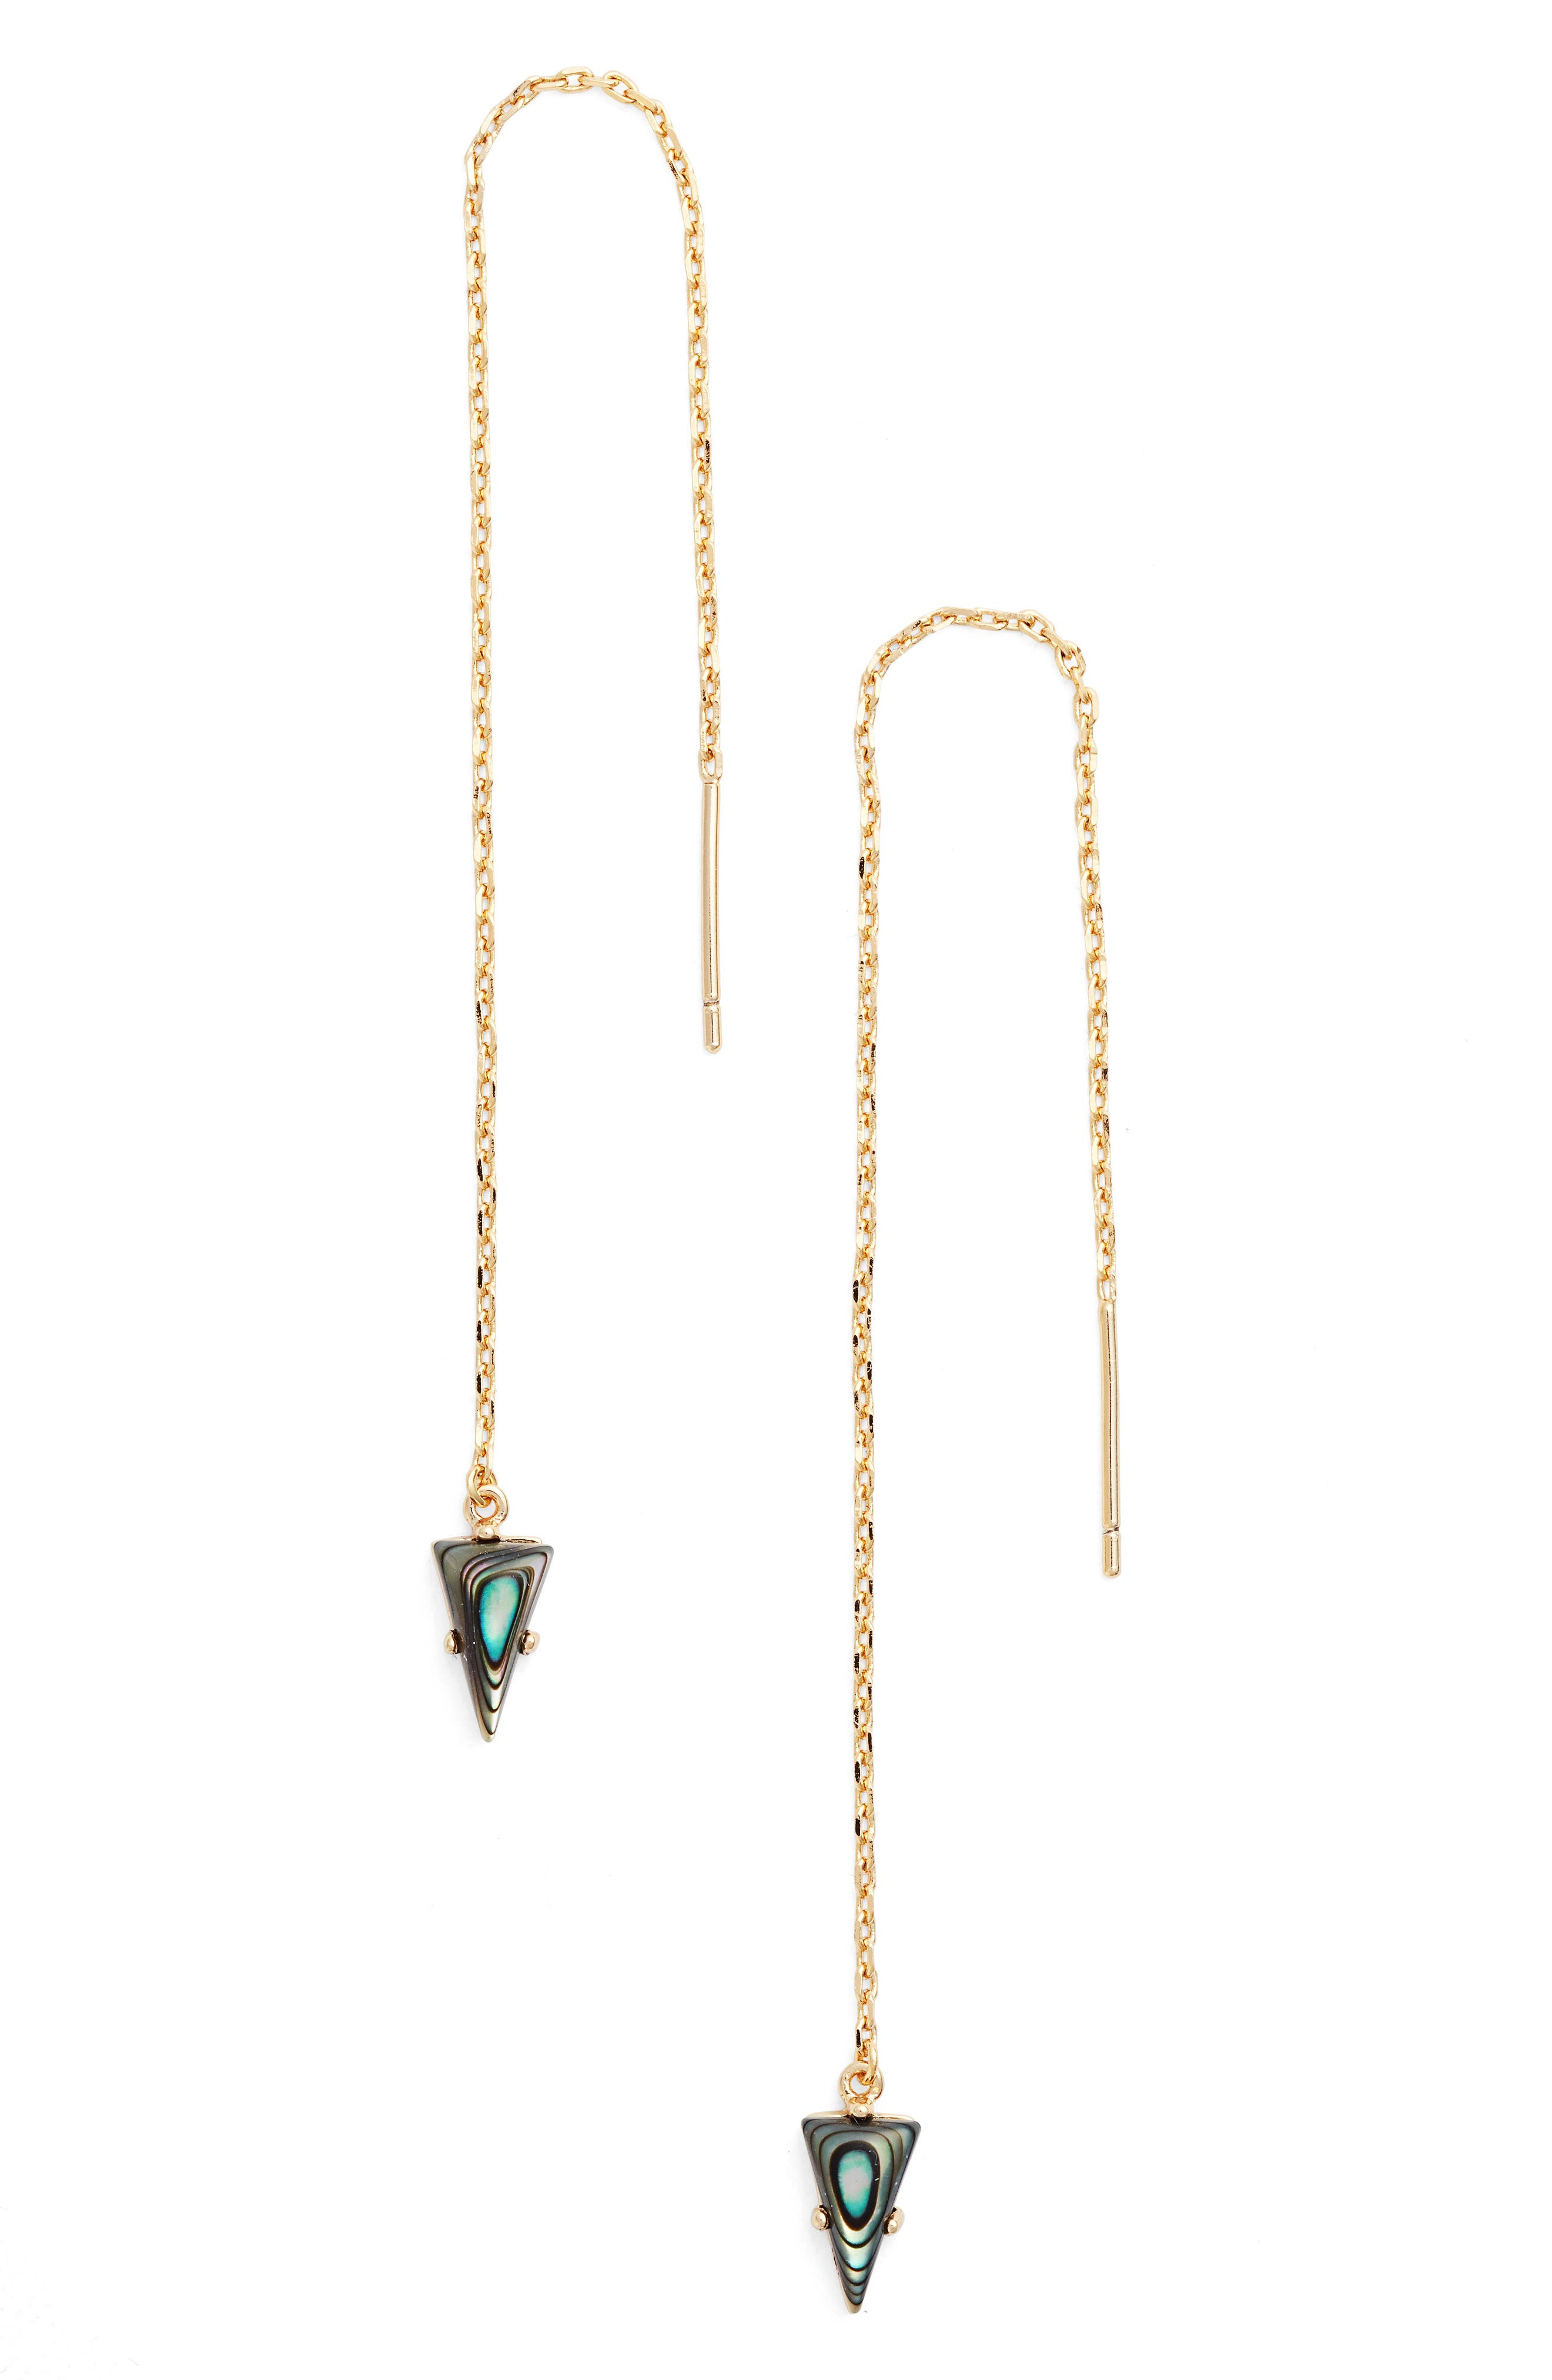 Triangle Gem Threader Earrings,                             Main thumbnail 1, color,                             Yellow Gold/ Abalone